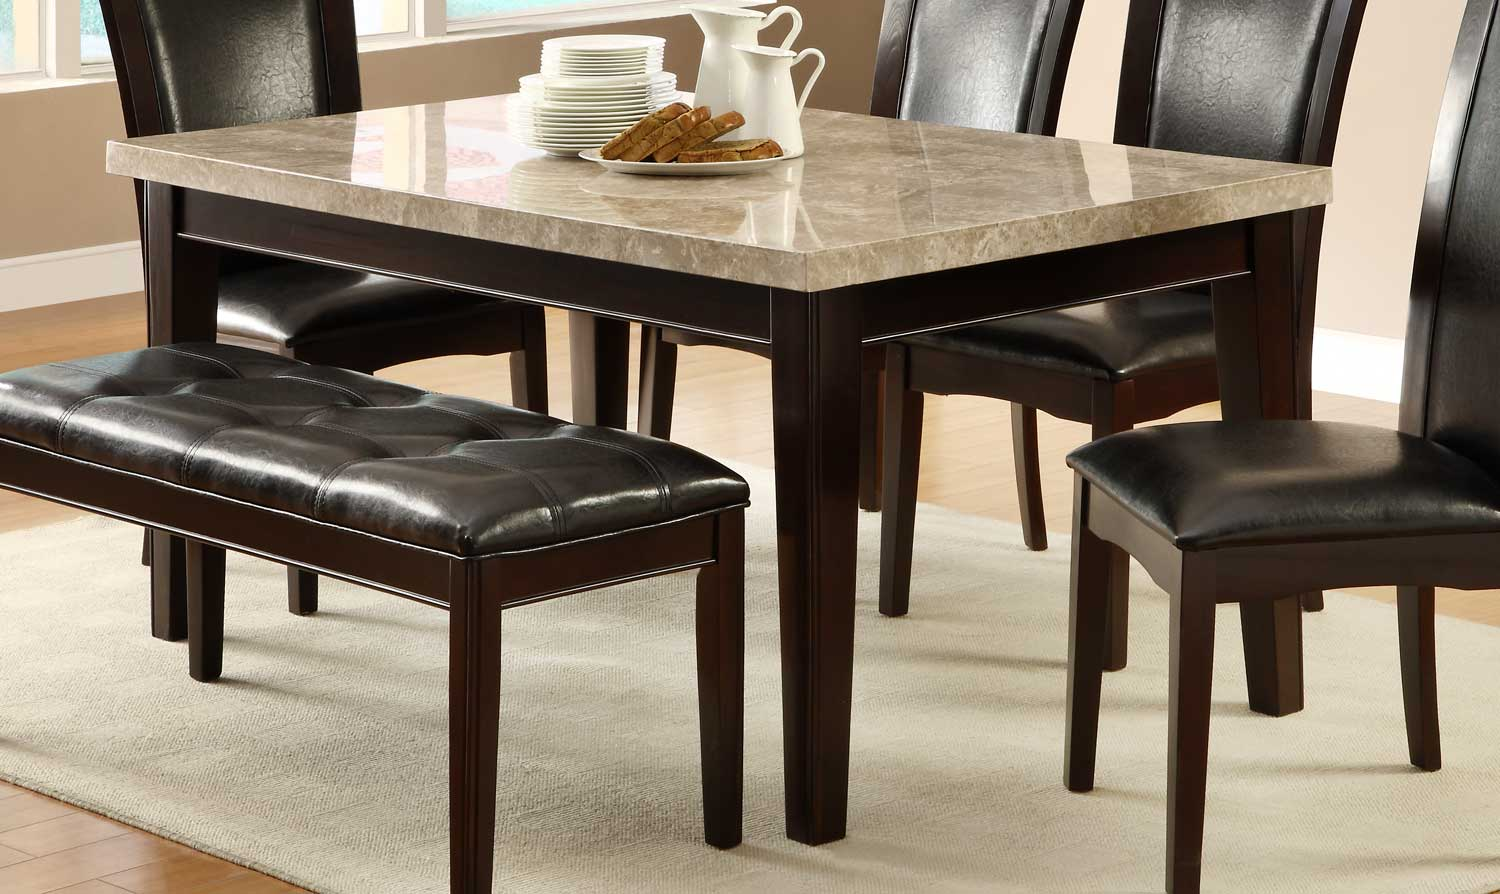 Homelegance Hahn Dining Table With Marble Top Hahn